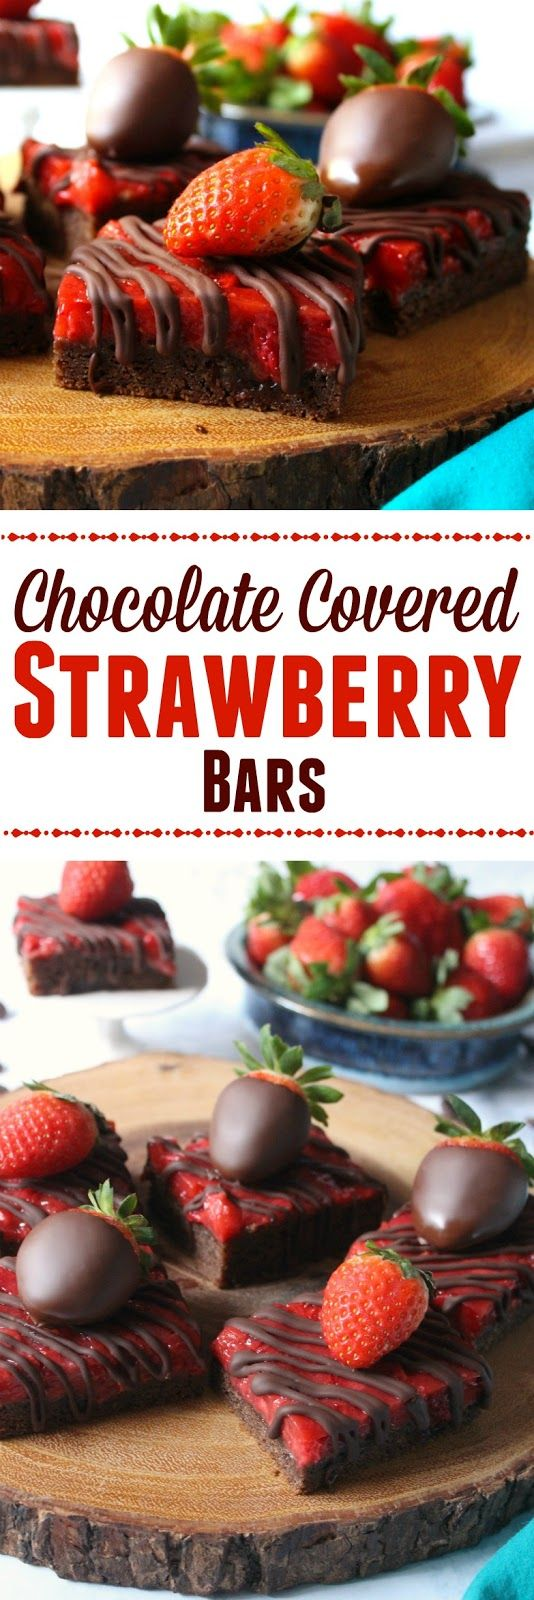 Love and Confections: Chocolate Covered Strawberry Bars